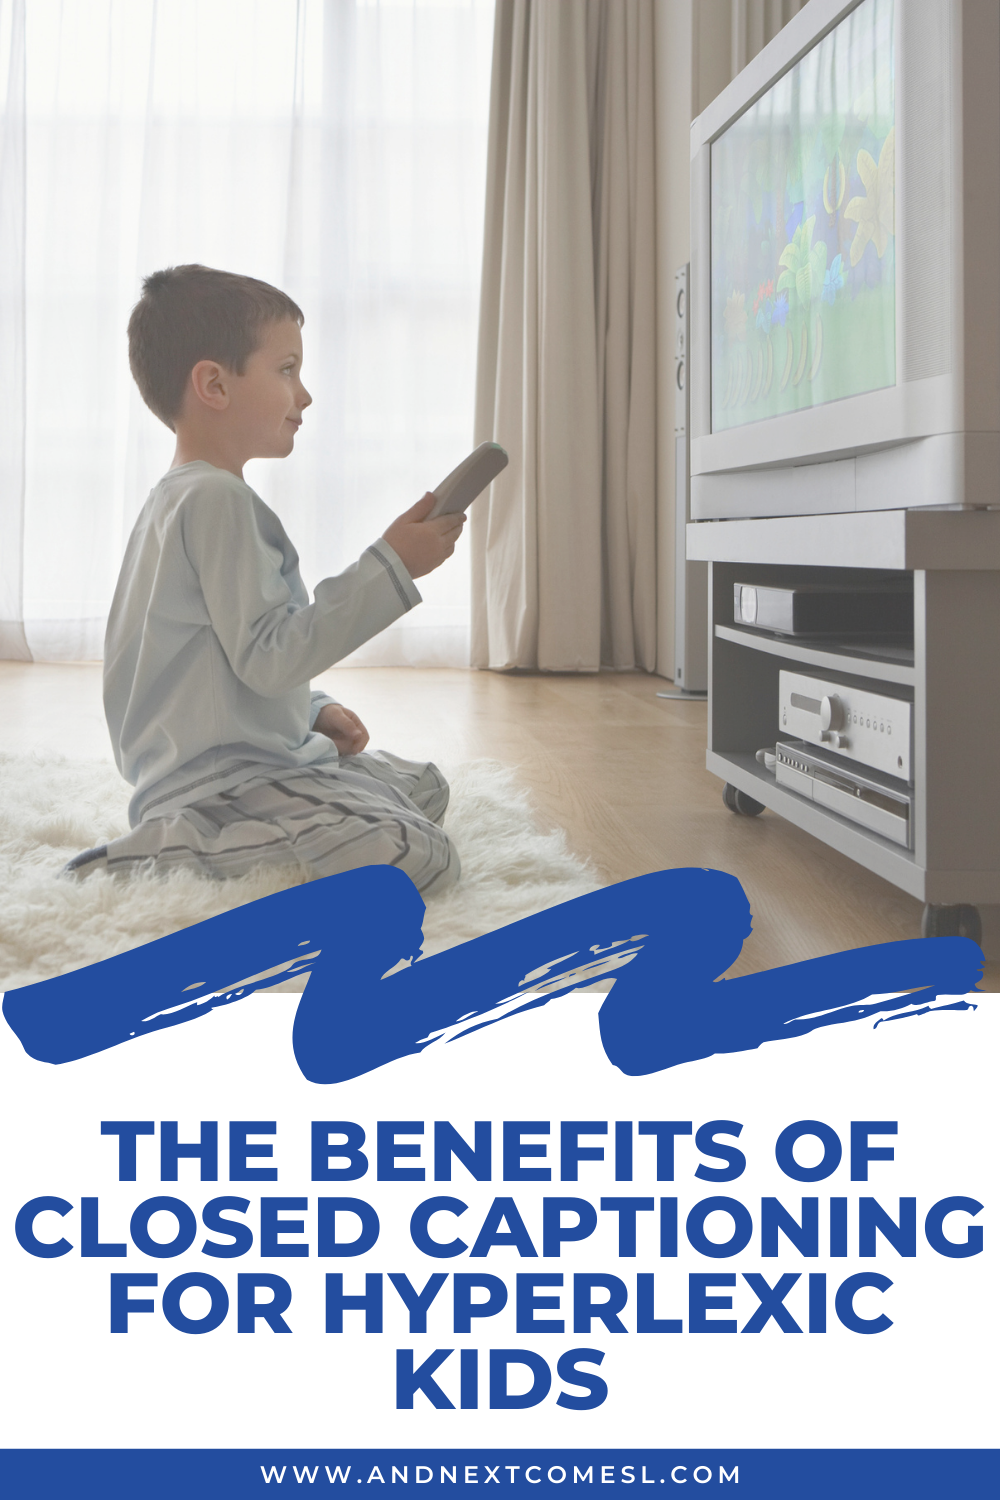 The benefits of closed captioning and reading subtitles for hyperlexic kids and how they can be used to help boost comprehension and understanding